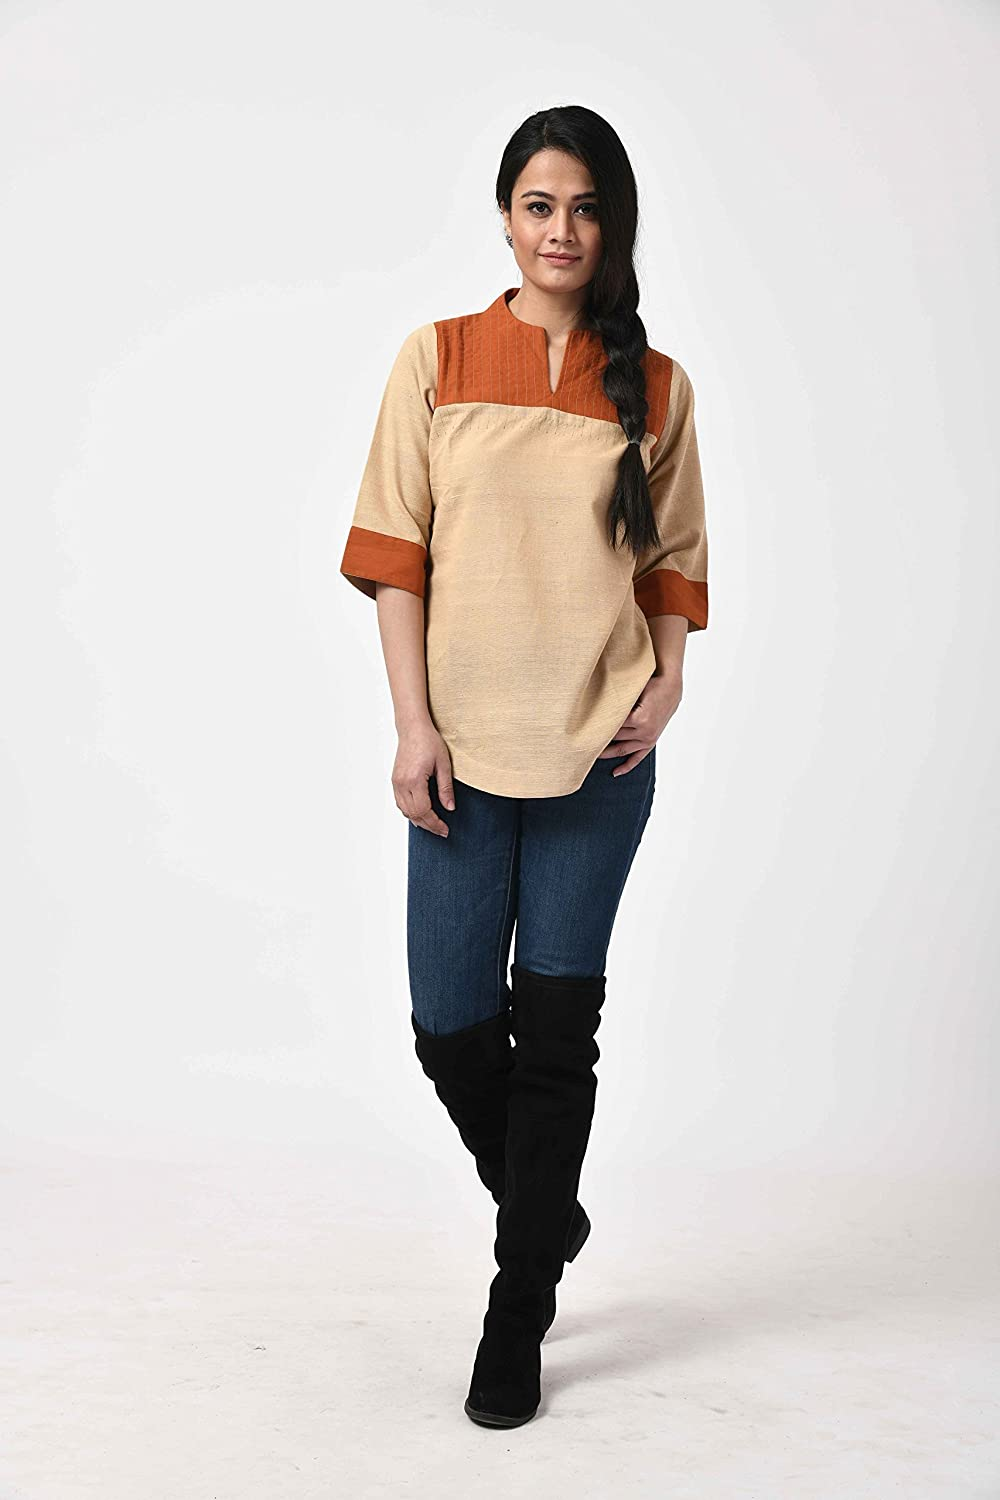 Quality inspection Beige-Rust Cotton 1 year warranty Tunic